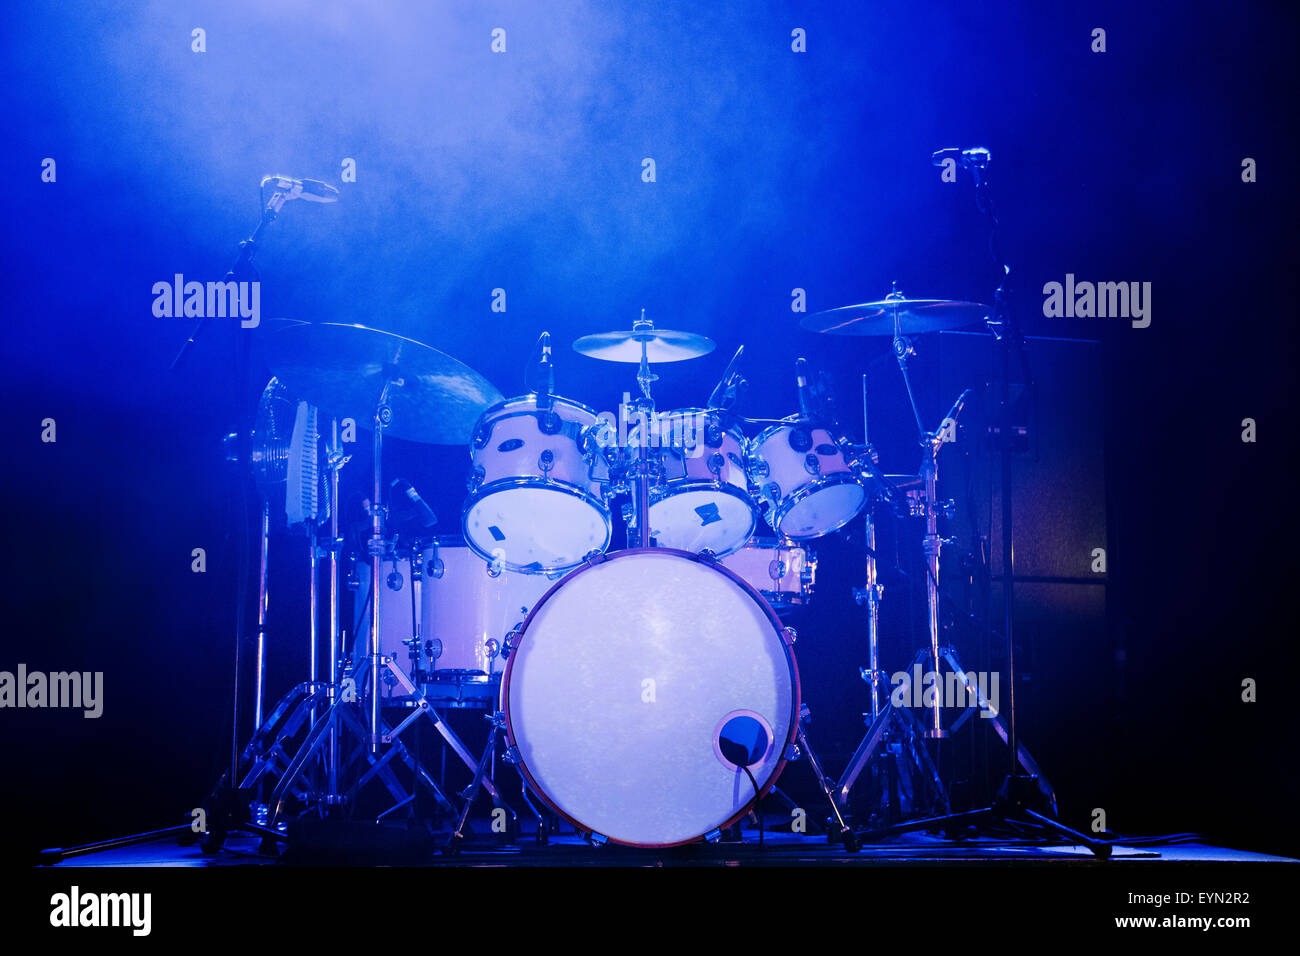 Full Rock Drum Kit On Stage With Blue Lighting And No Drummer Stock